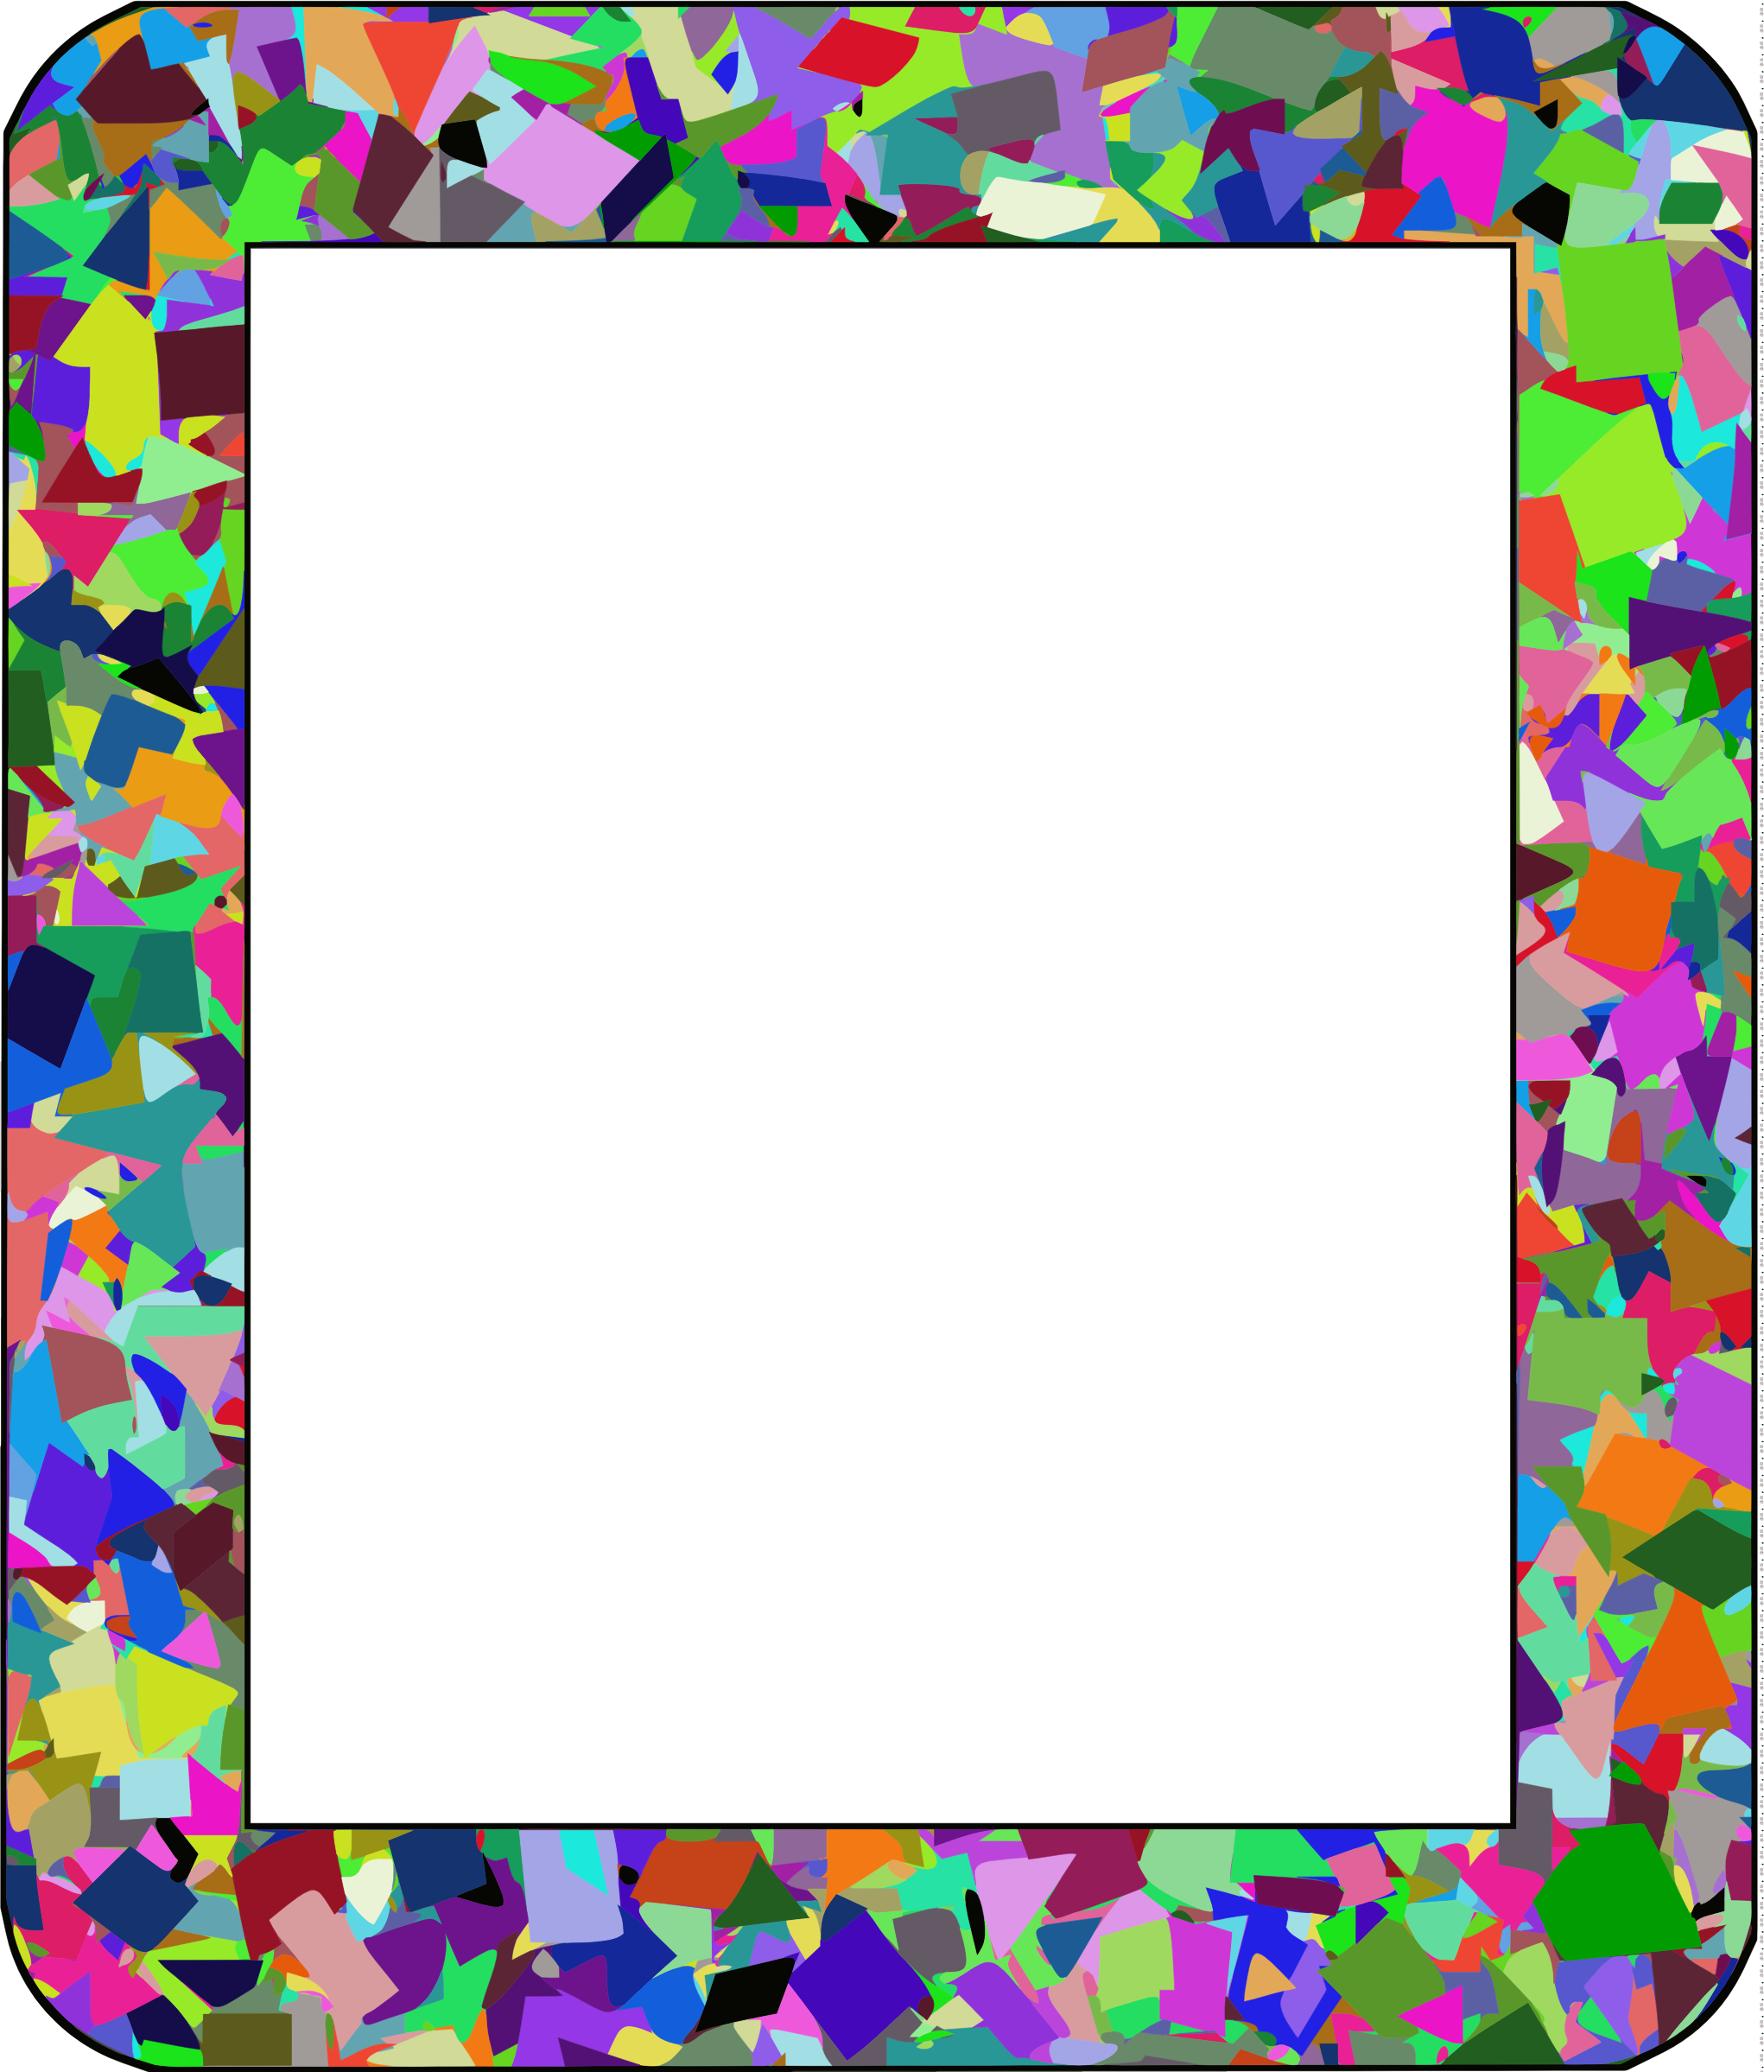 Confetti Frame 1 (Filesize Reduced Version) by GDJ